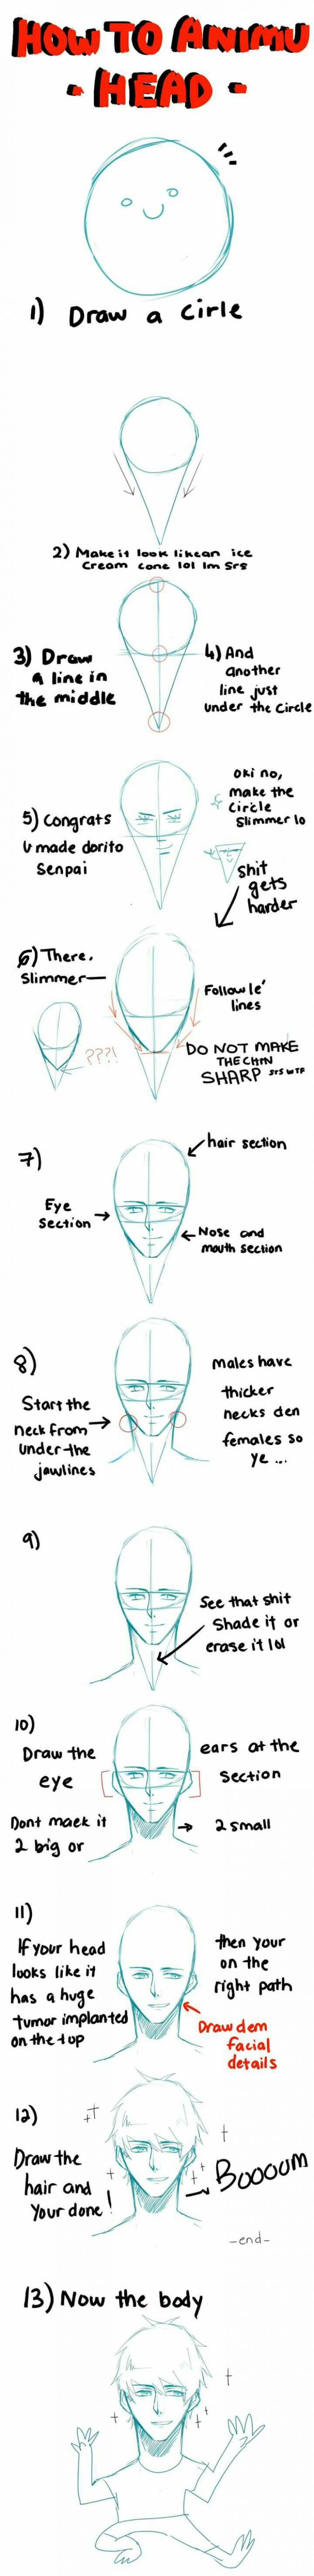 How to draw anime - 9GAG